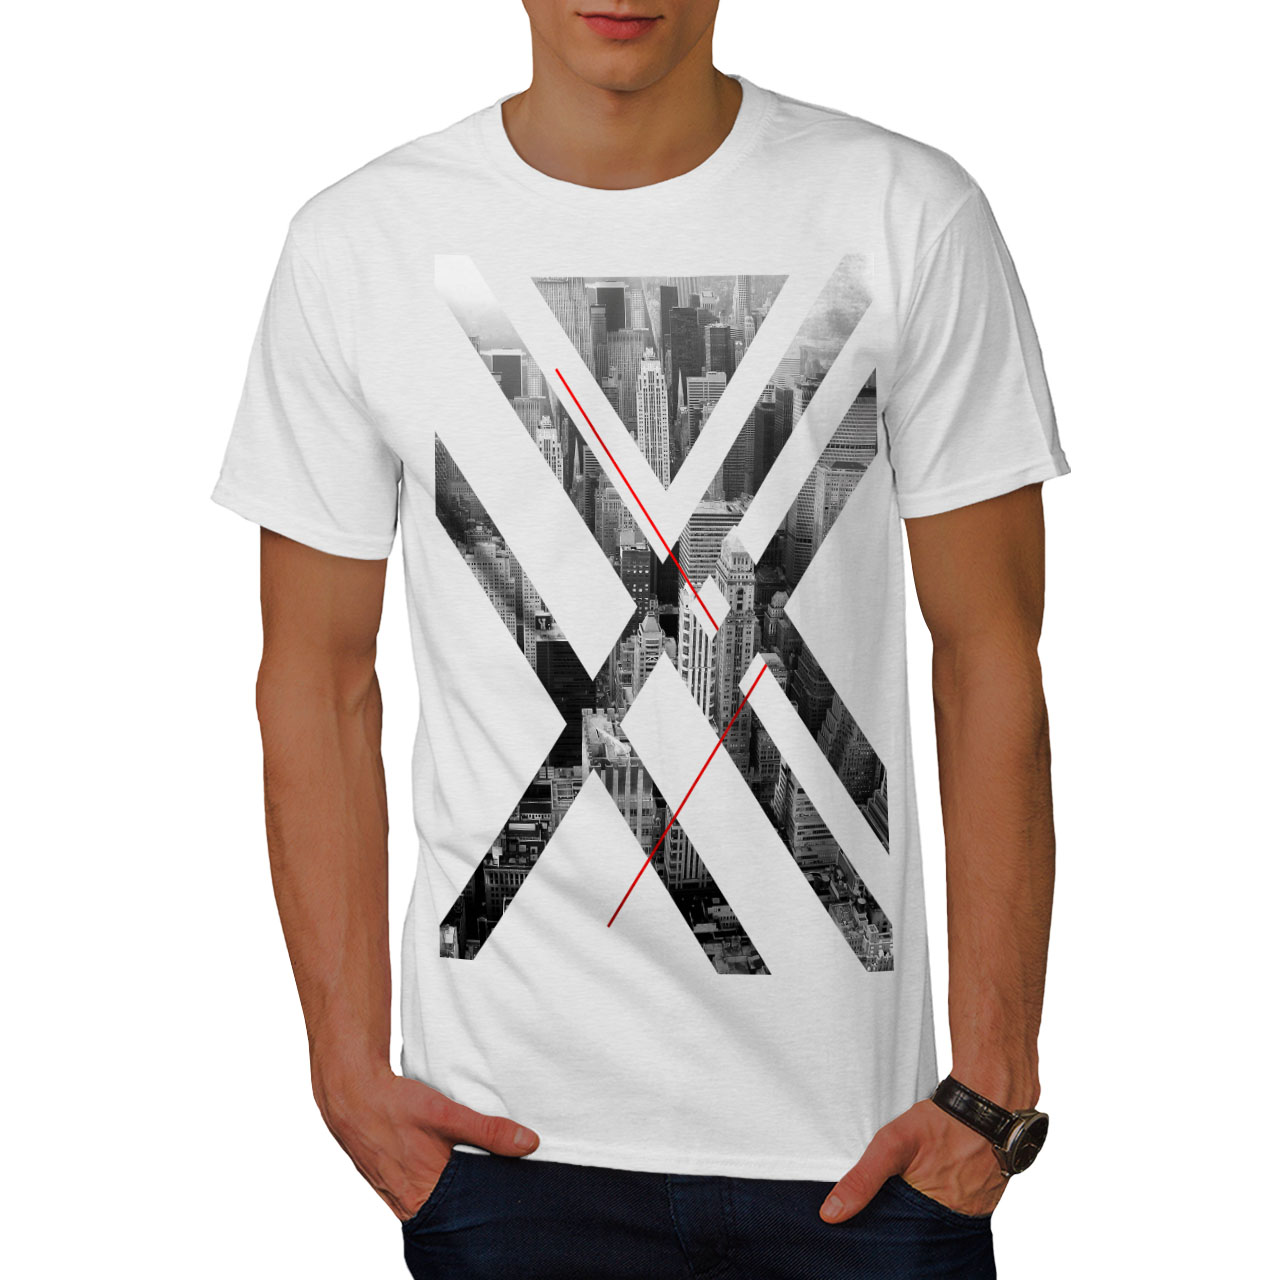 Details About Wellcoda City Usa Abstract Mens T Shirt Urban Graphic Design Printed Tee